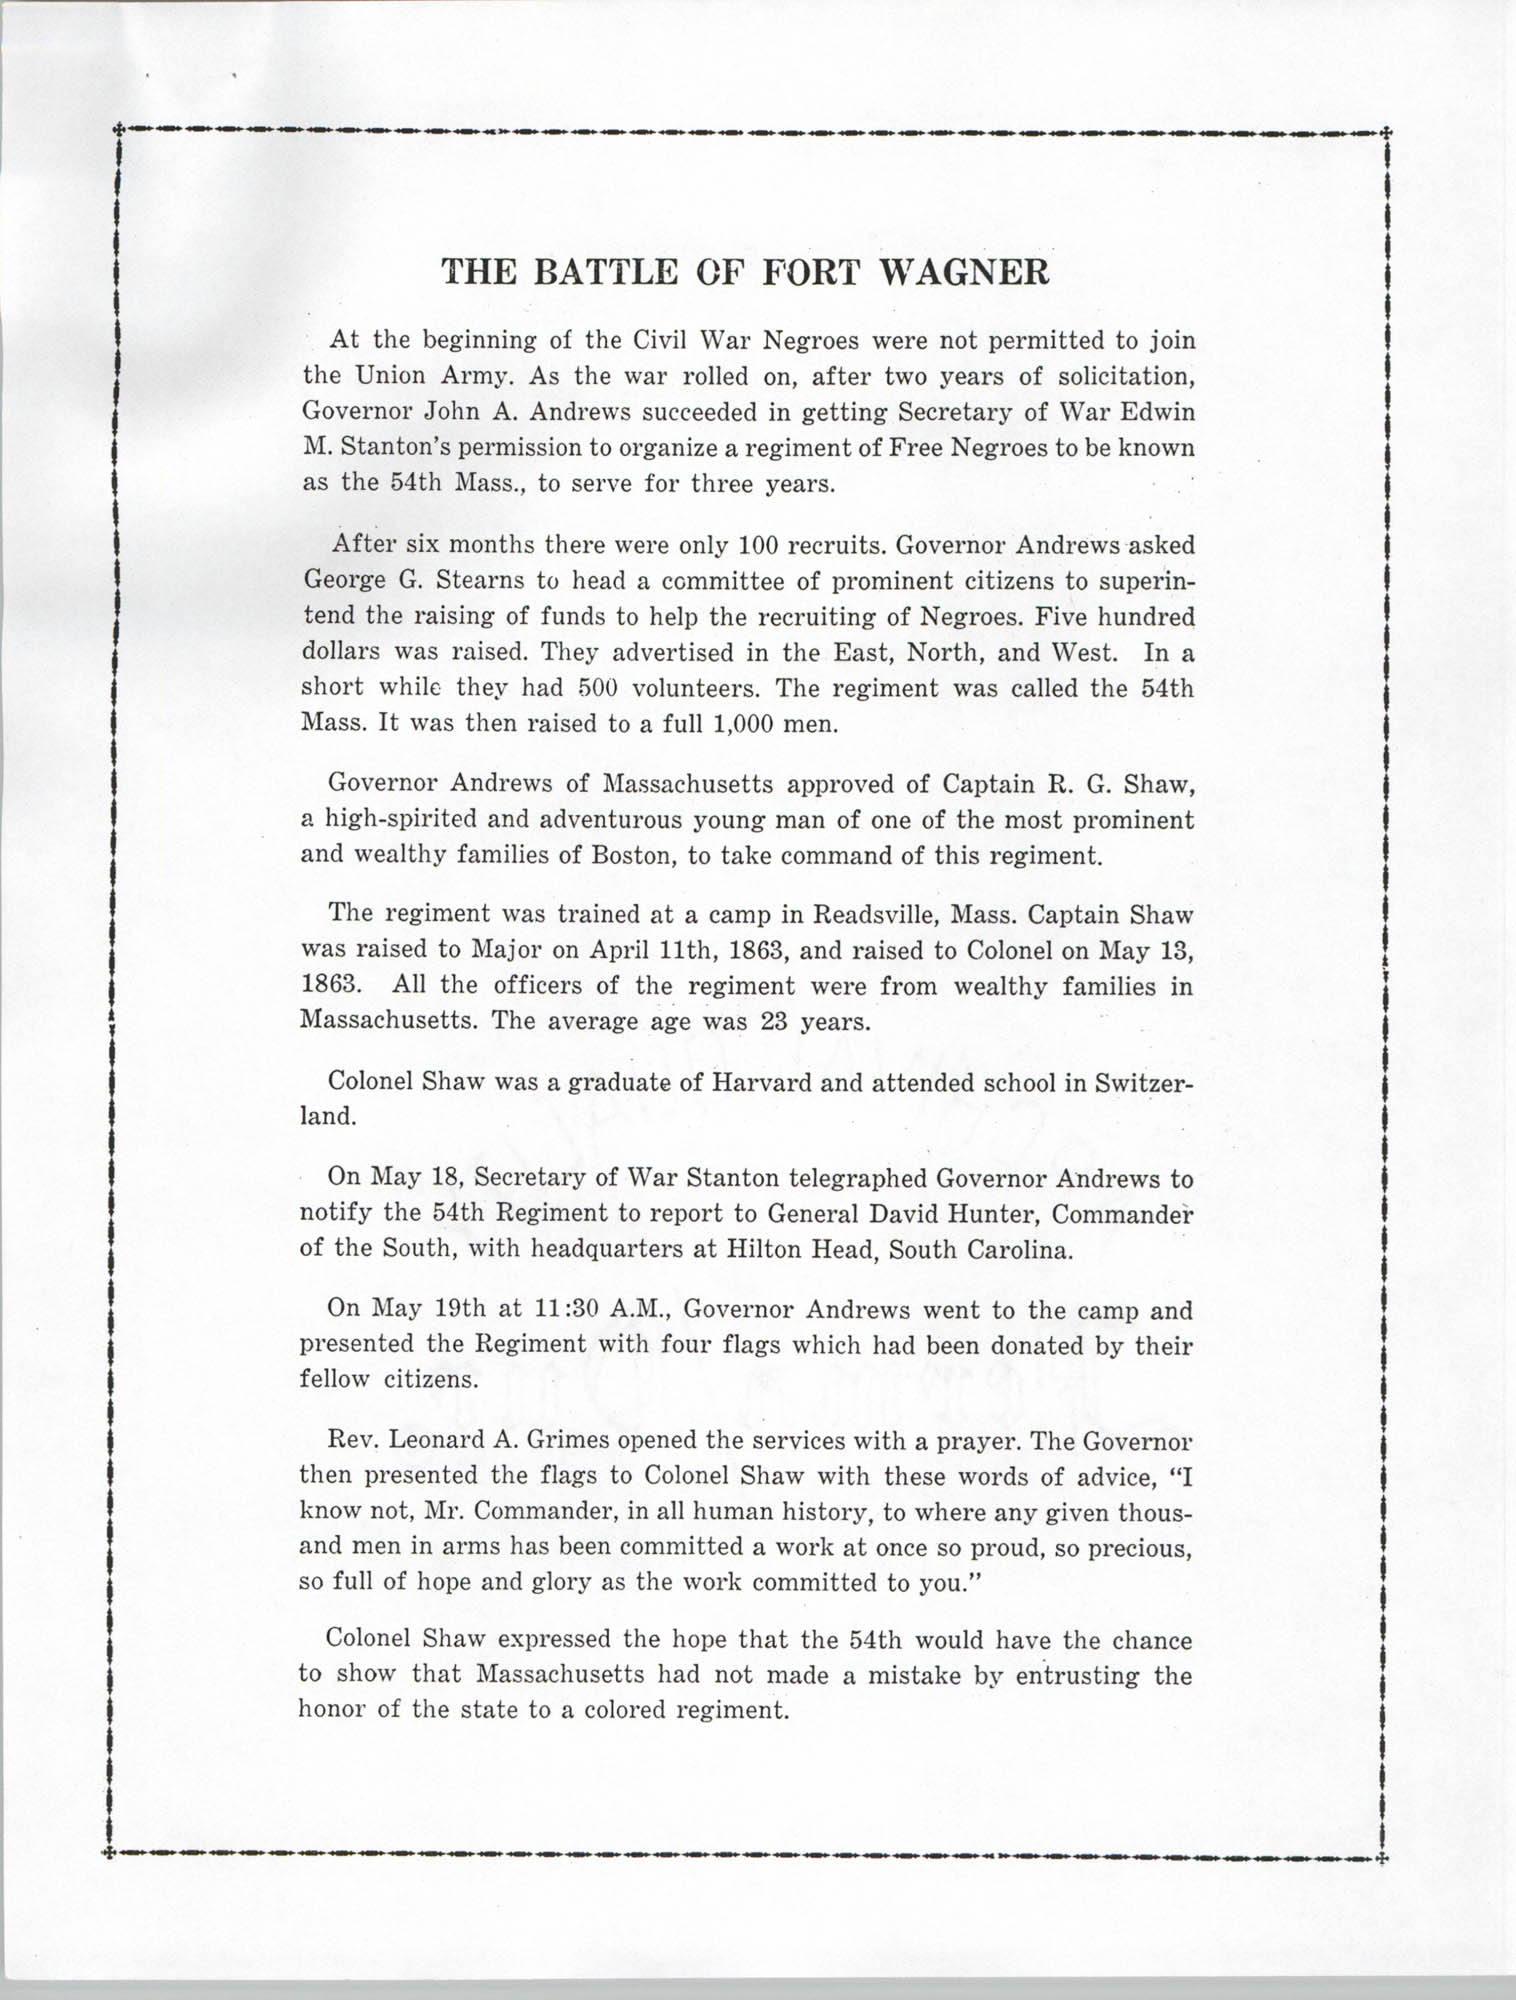 Ninety-Ninth Anniversary of the Battle of Fort Wagner Program, Page 4